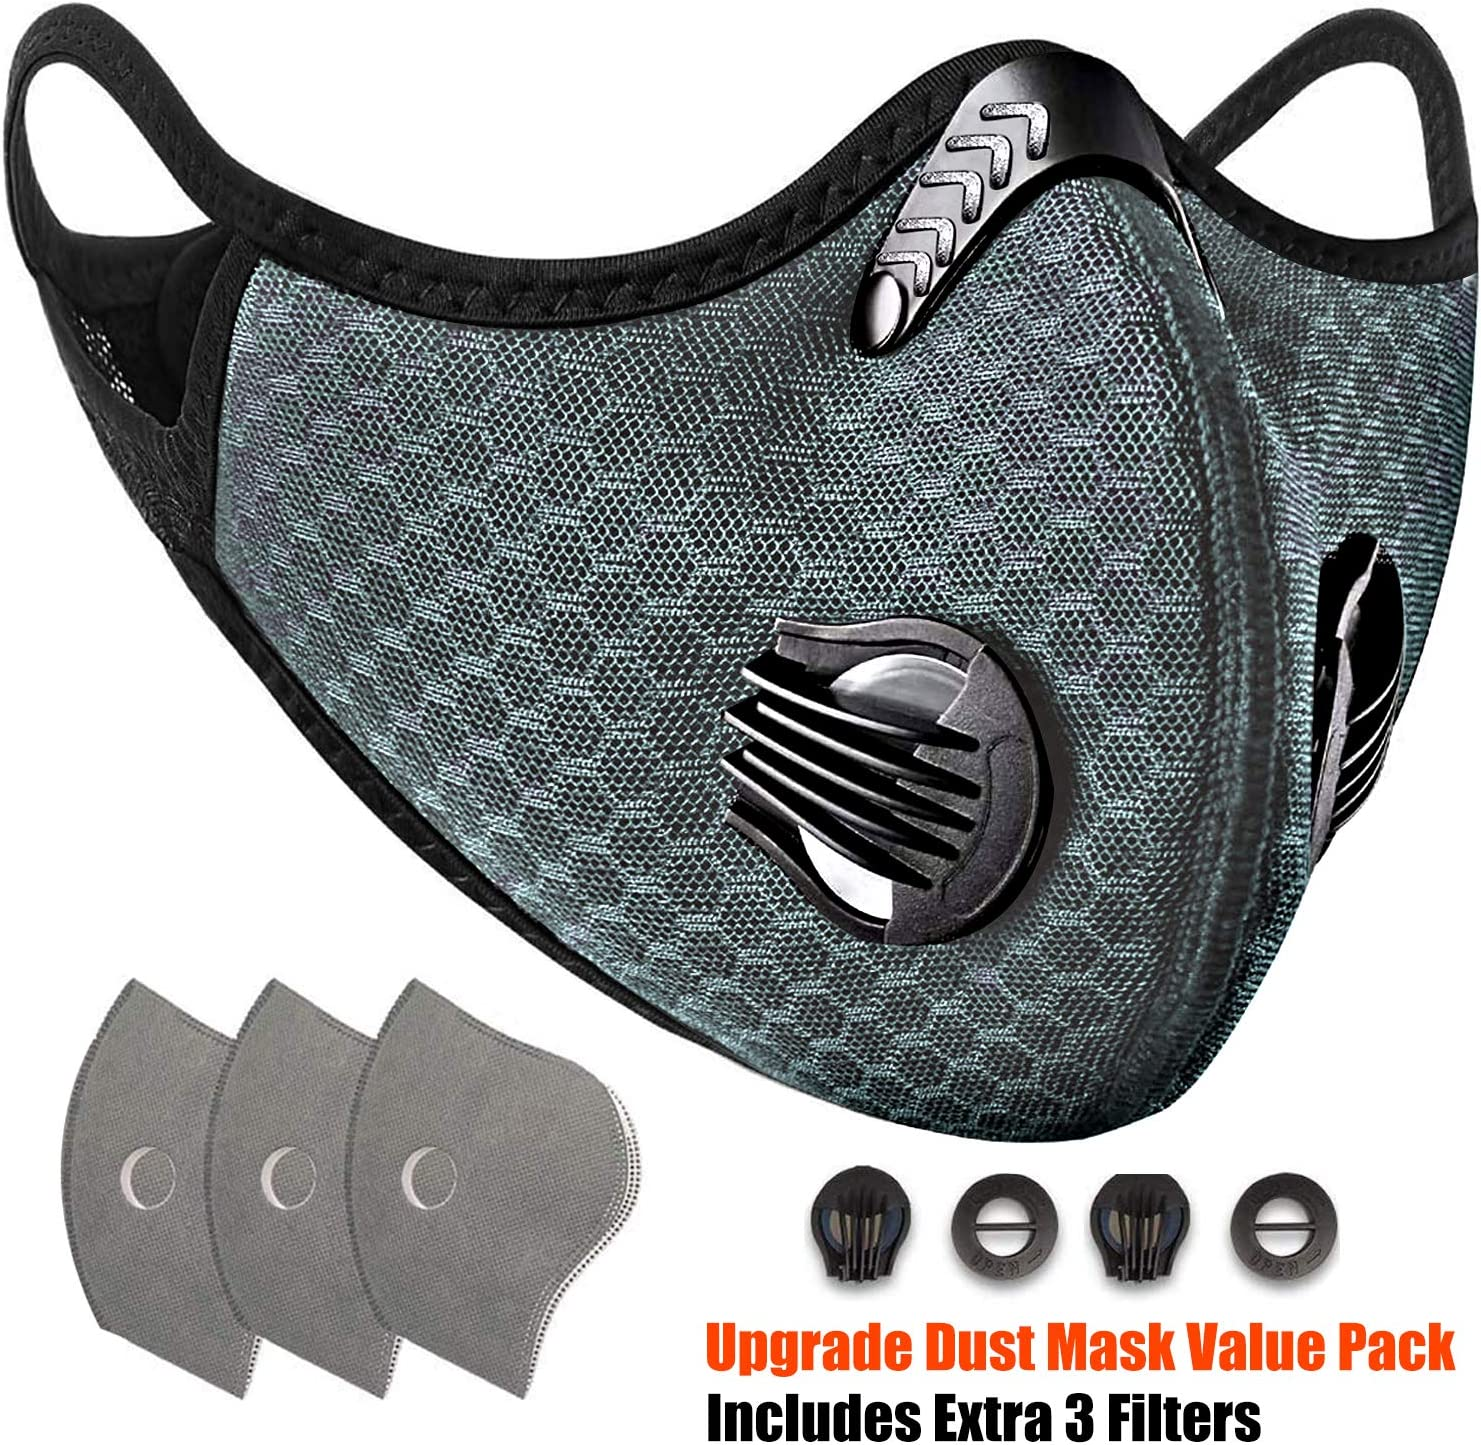 Dust Breathing Mask Activated Carbon Dustproof Mask Washable and Reusable Mask with 6 Carbon N99 Barrier for Pollen Allergy Woodworking Mowing Running Cycling Outdoor Activities,Gray